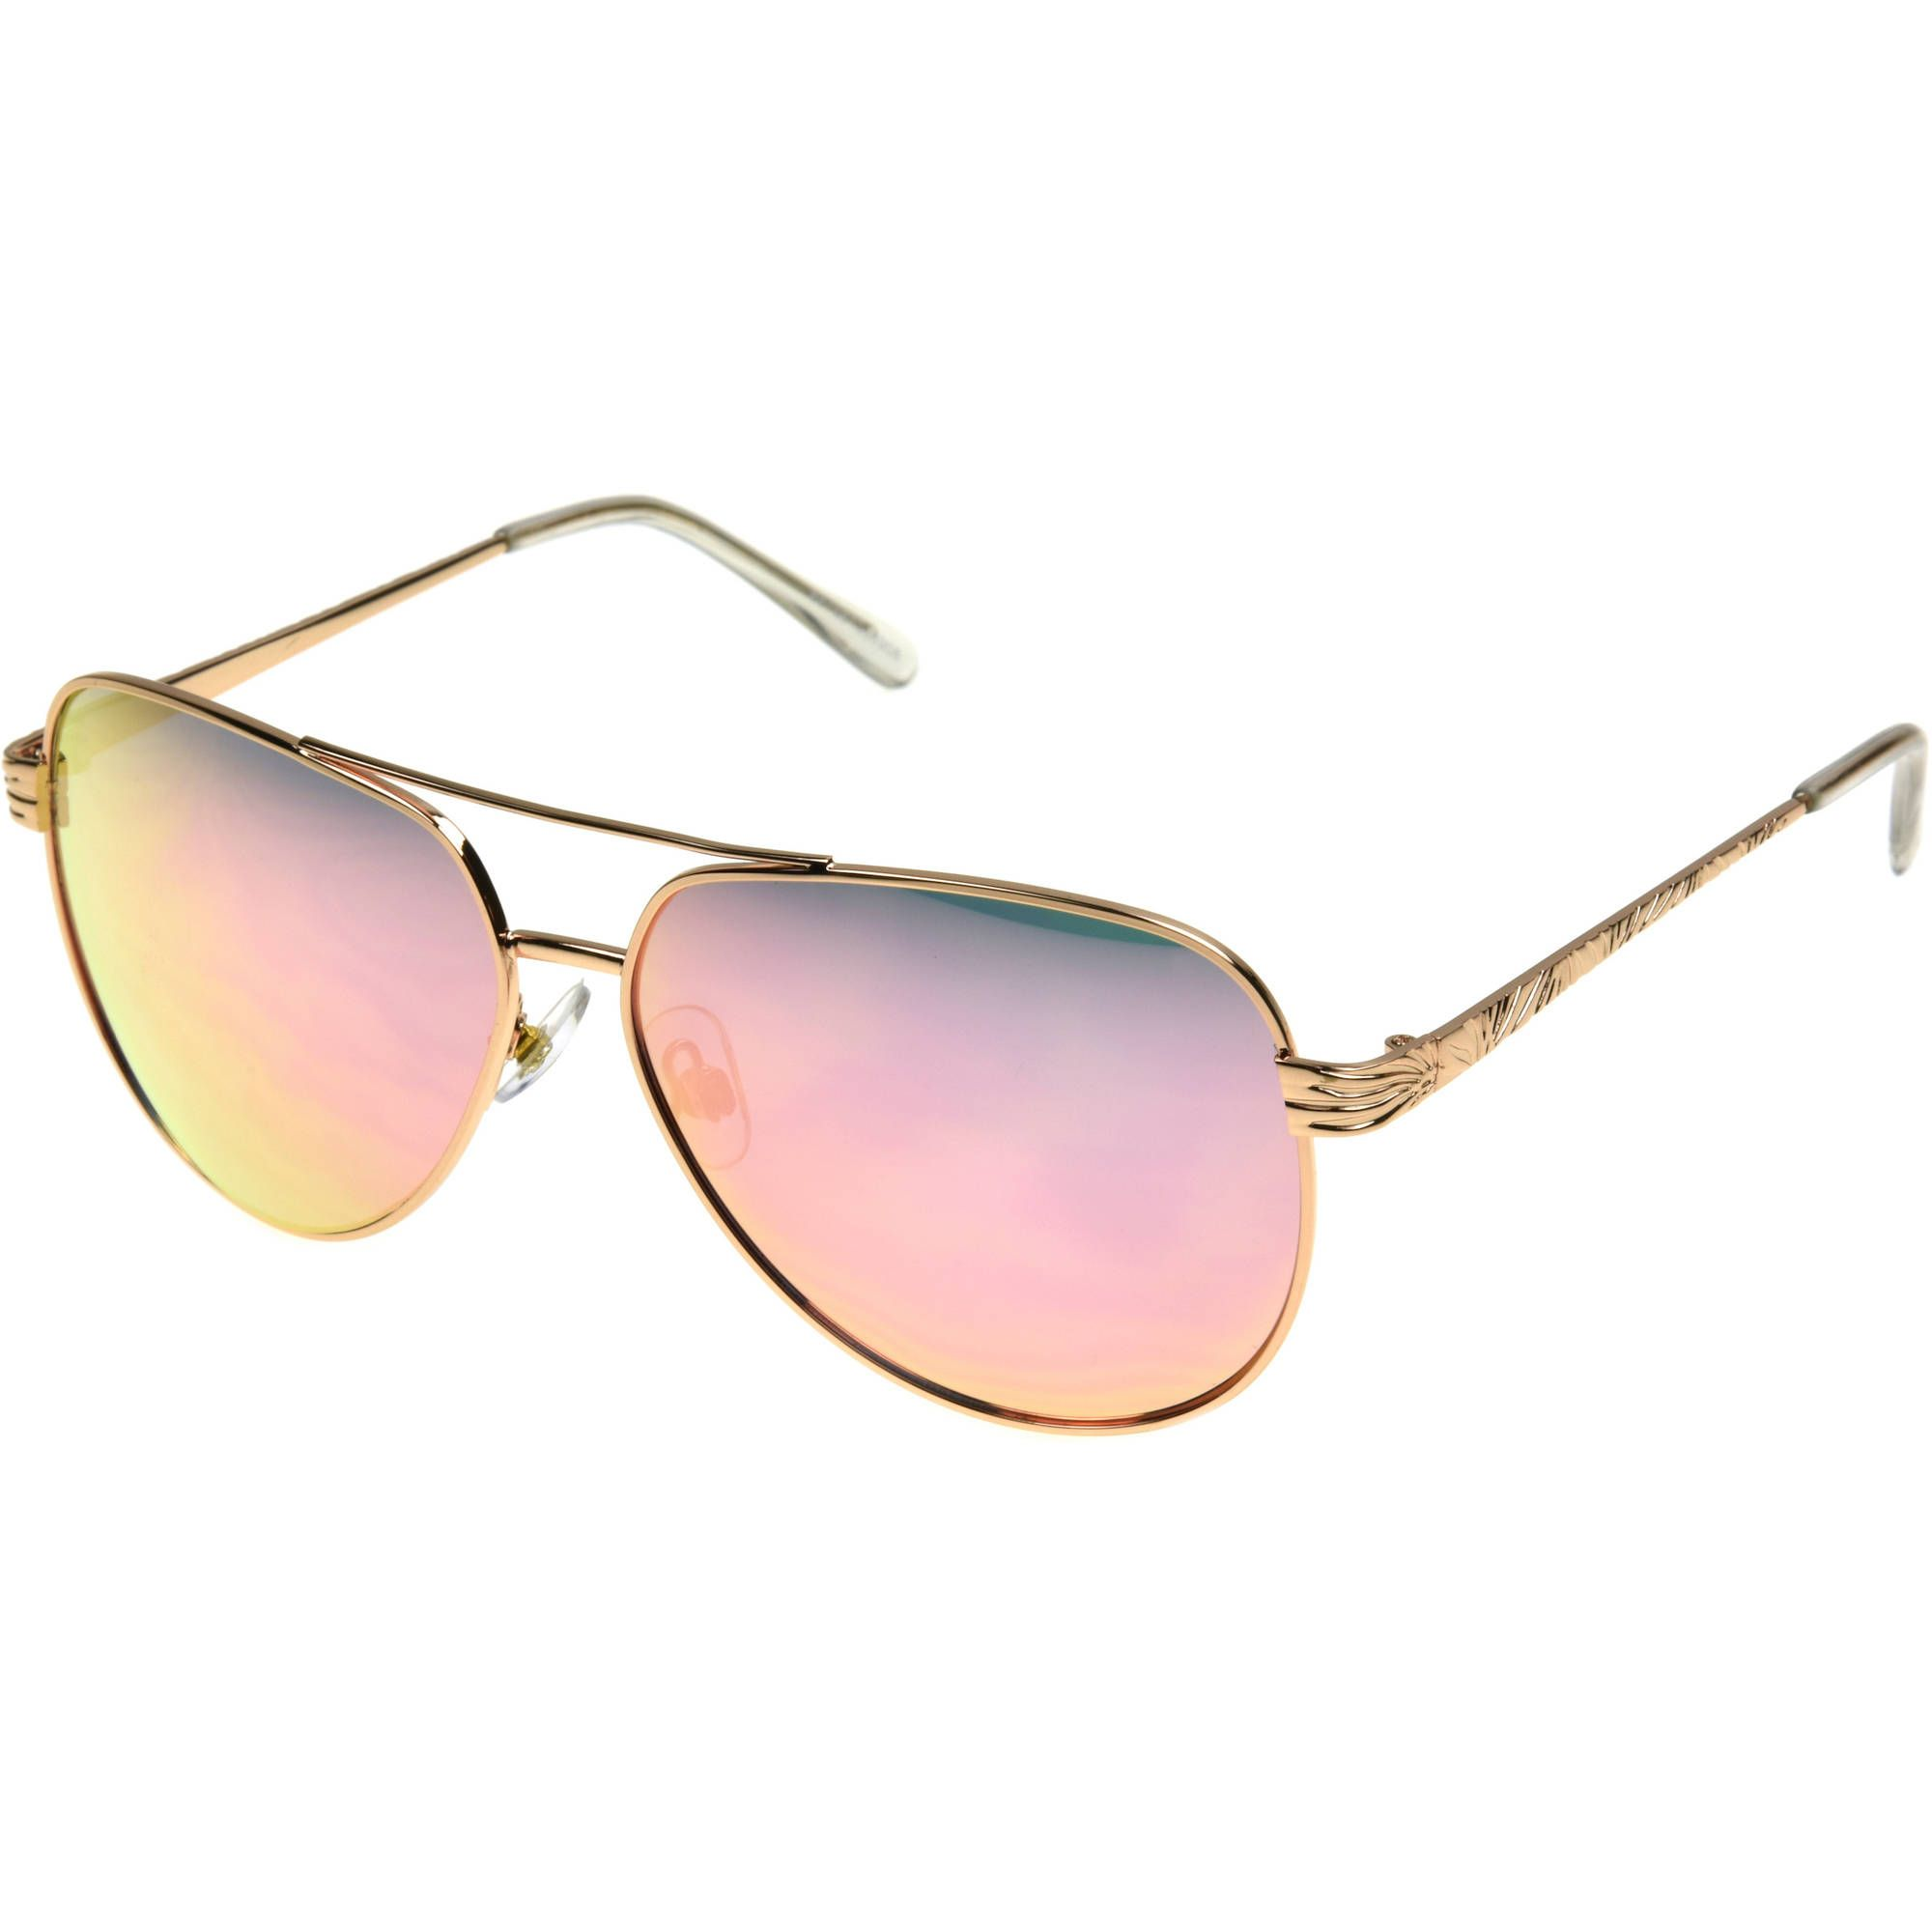 5a0a6ca24 Foster Grant Women's Aviator 8 Sunglasses - Walmart.com | want ...